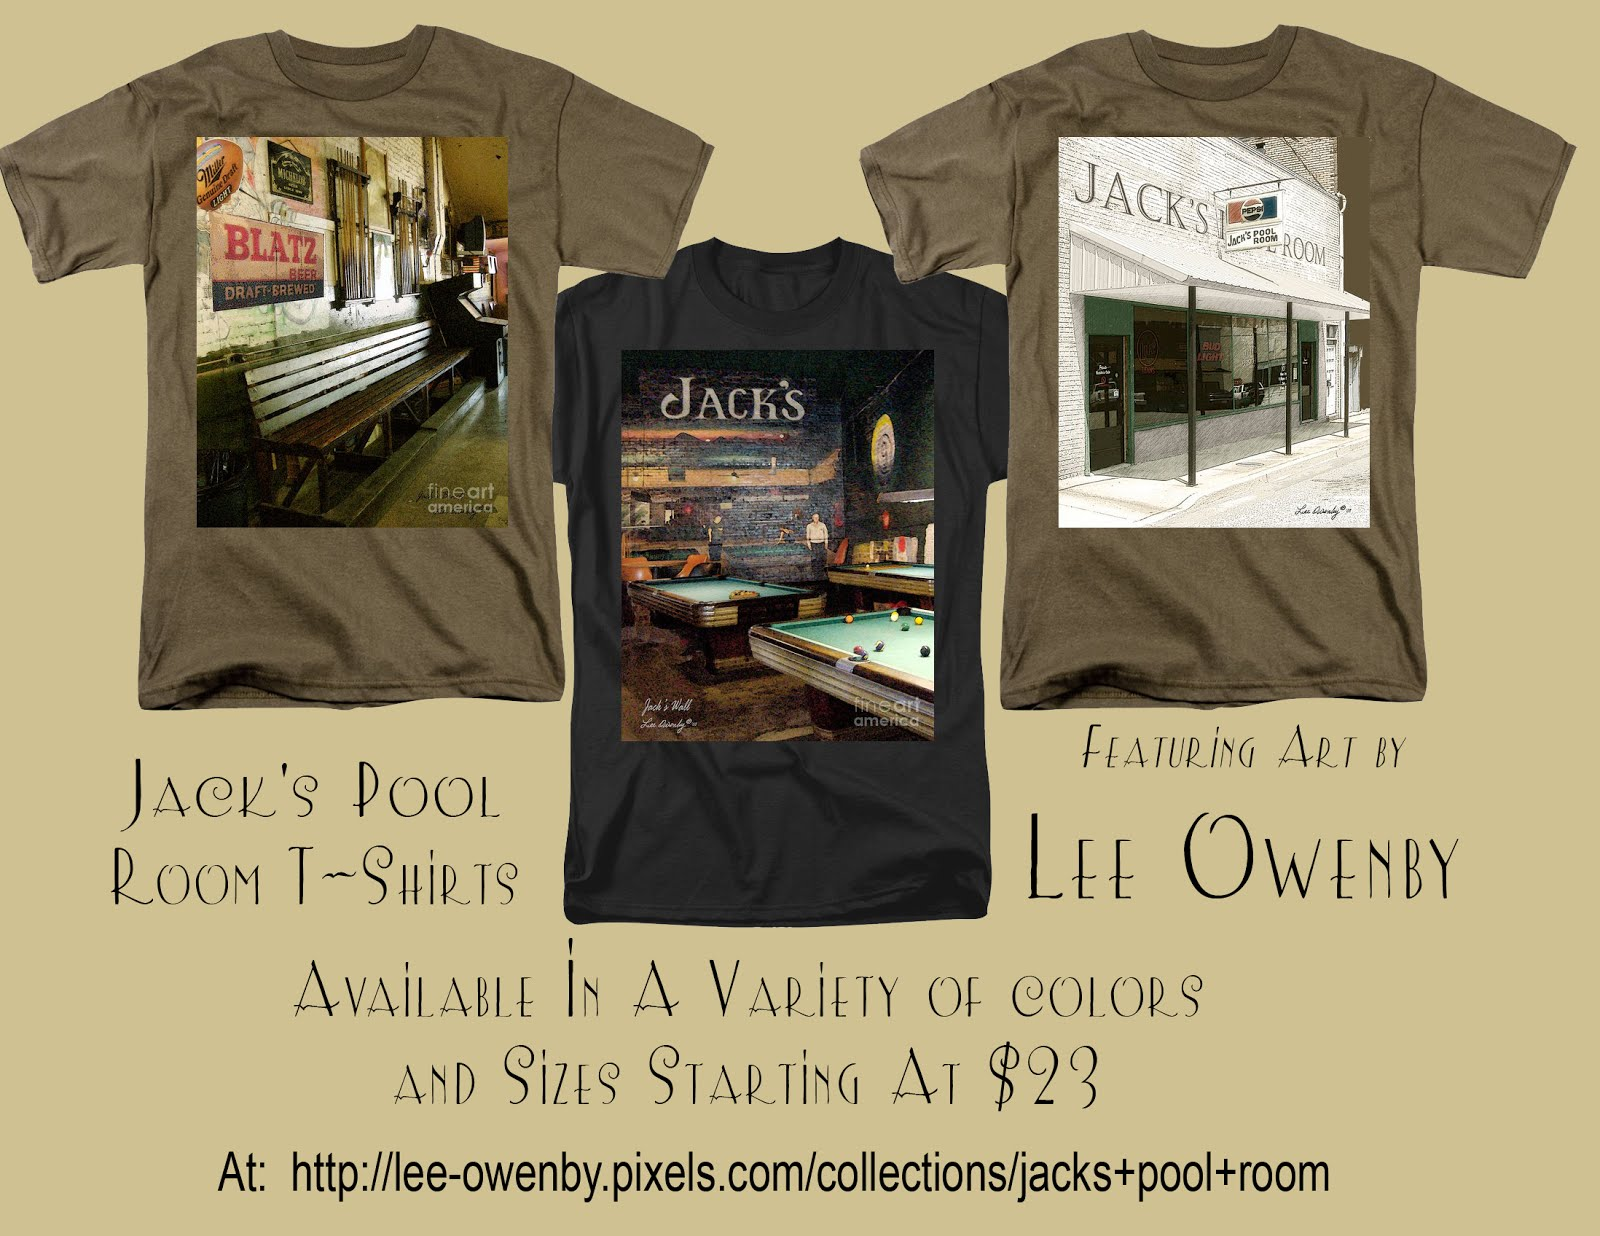 Jack's Pool Room T-Shirts